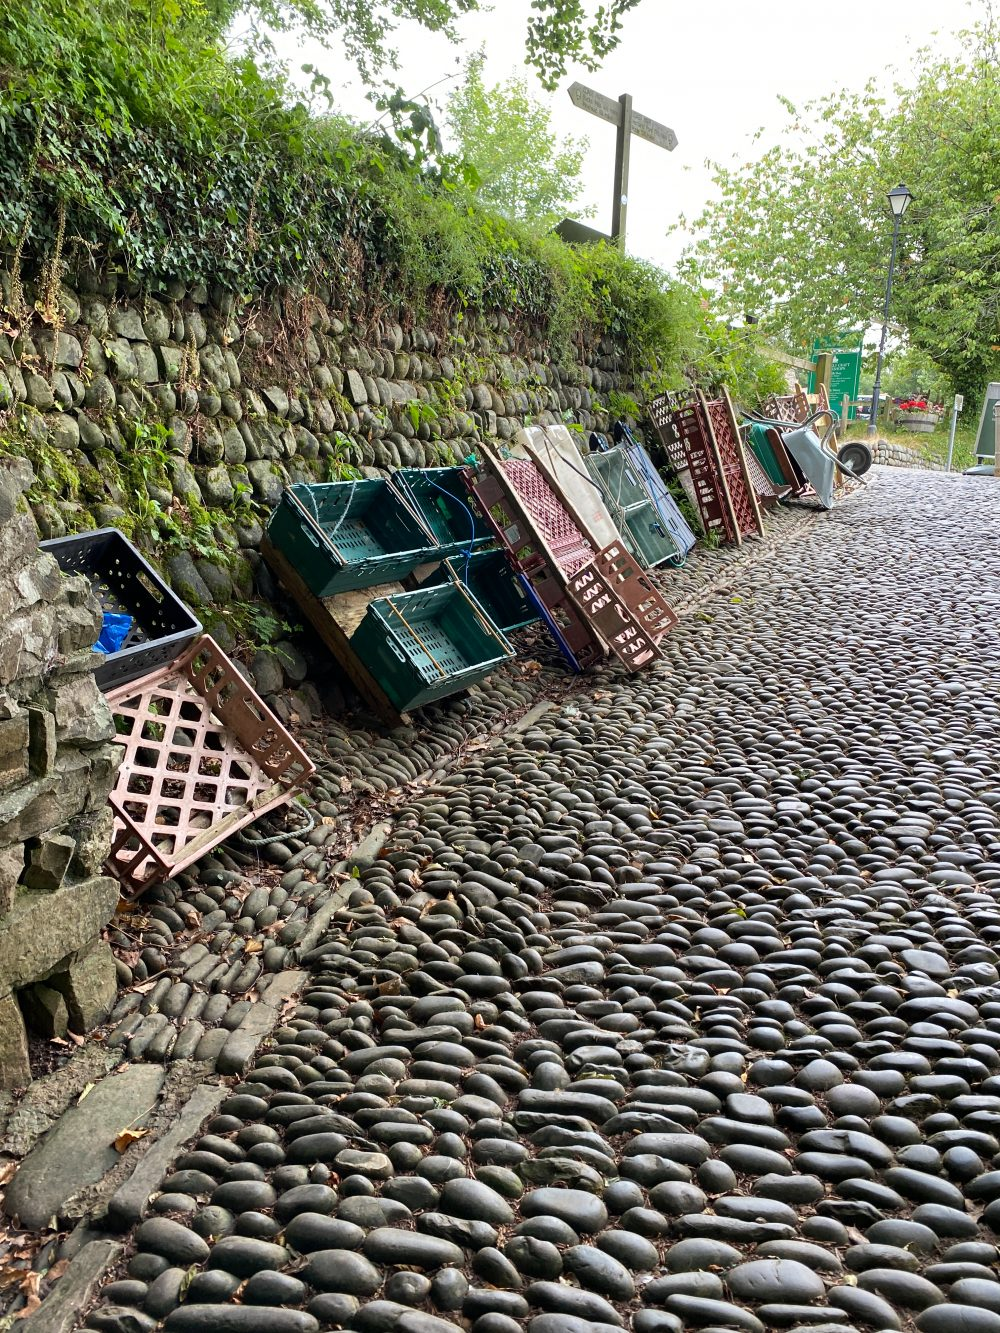 sledges stacked up again the wall on cobbled street